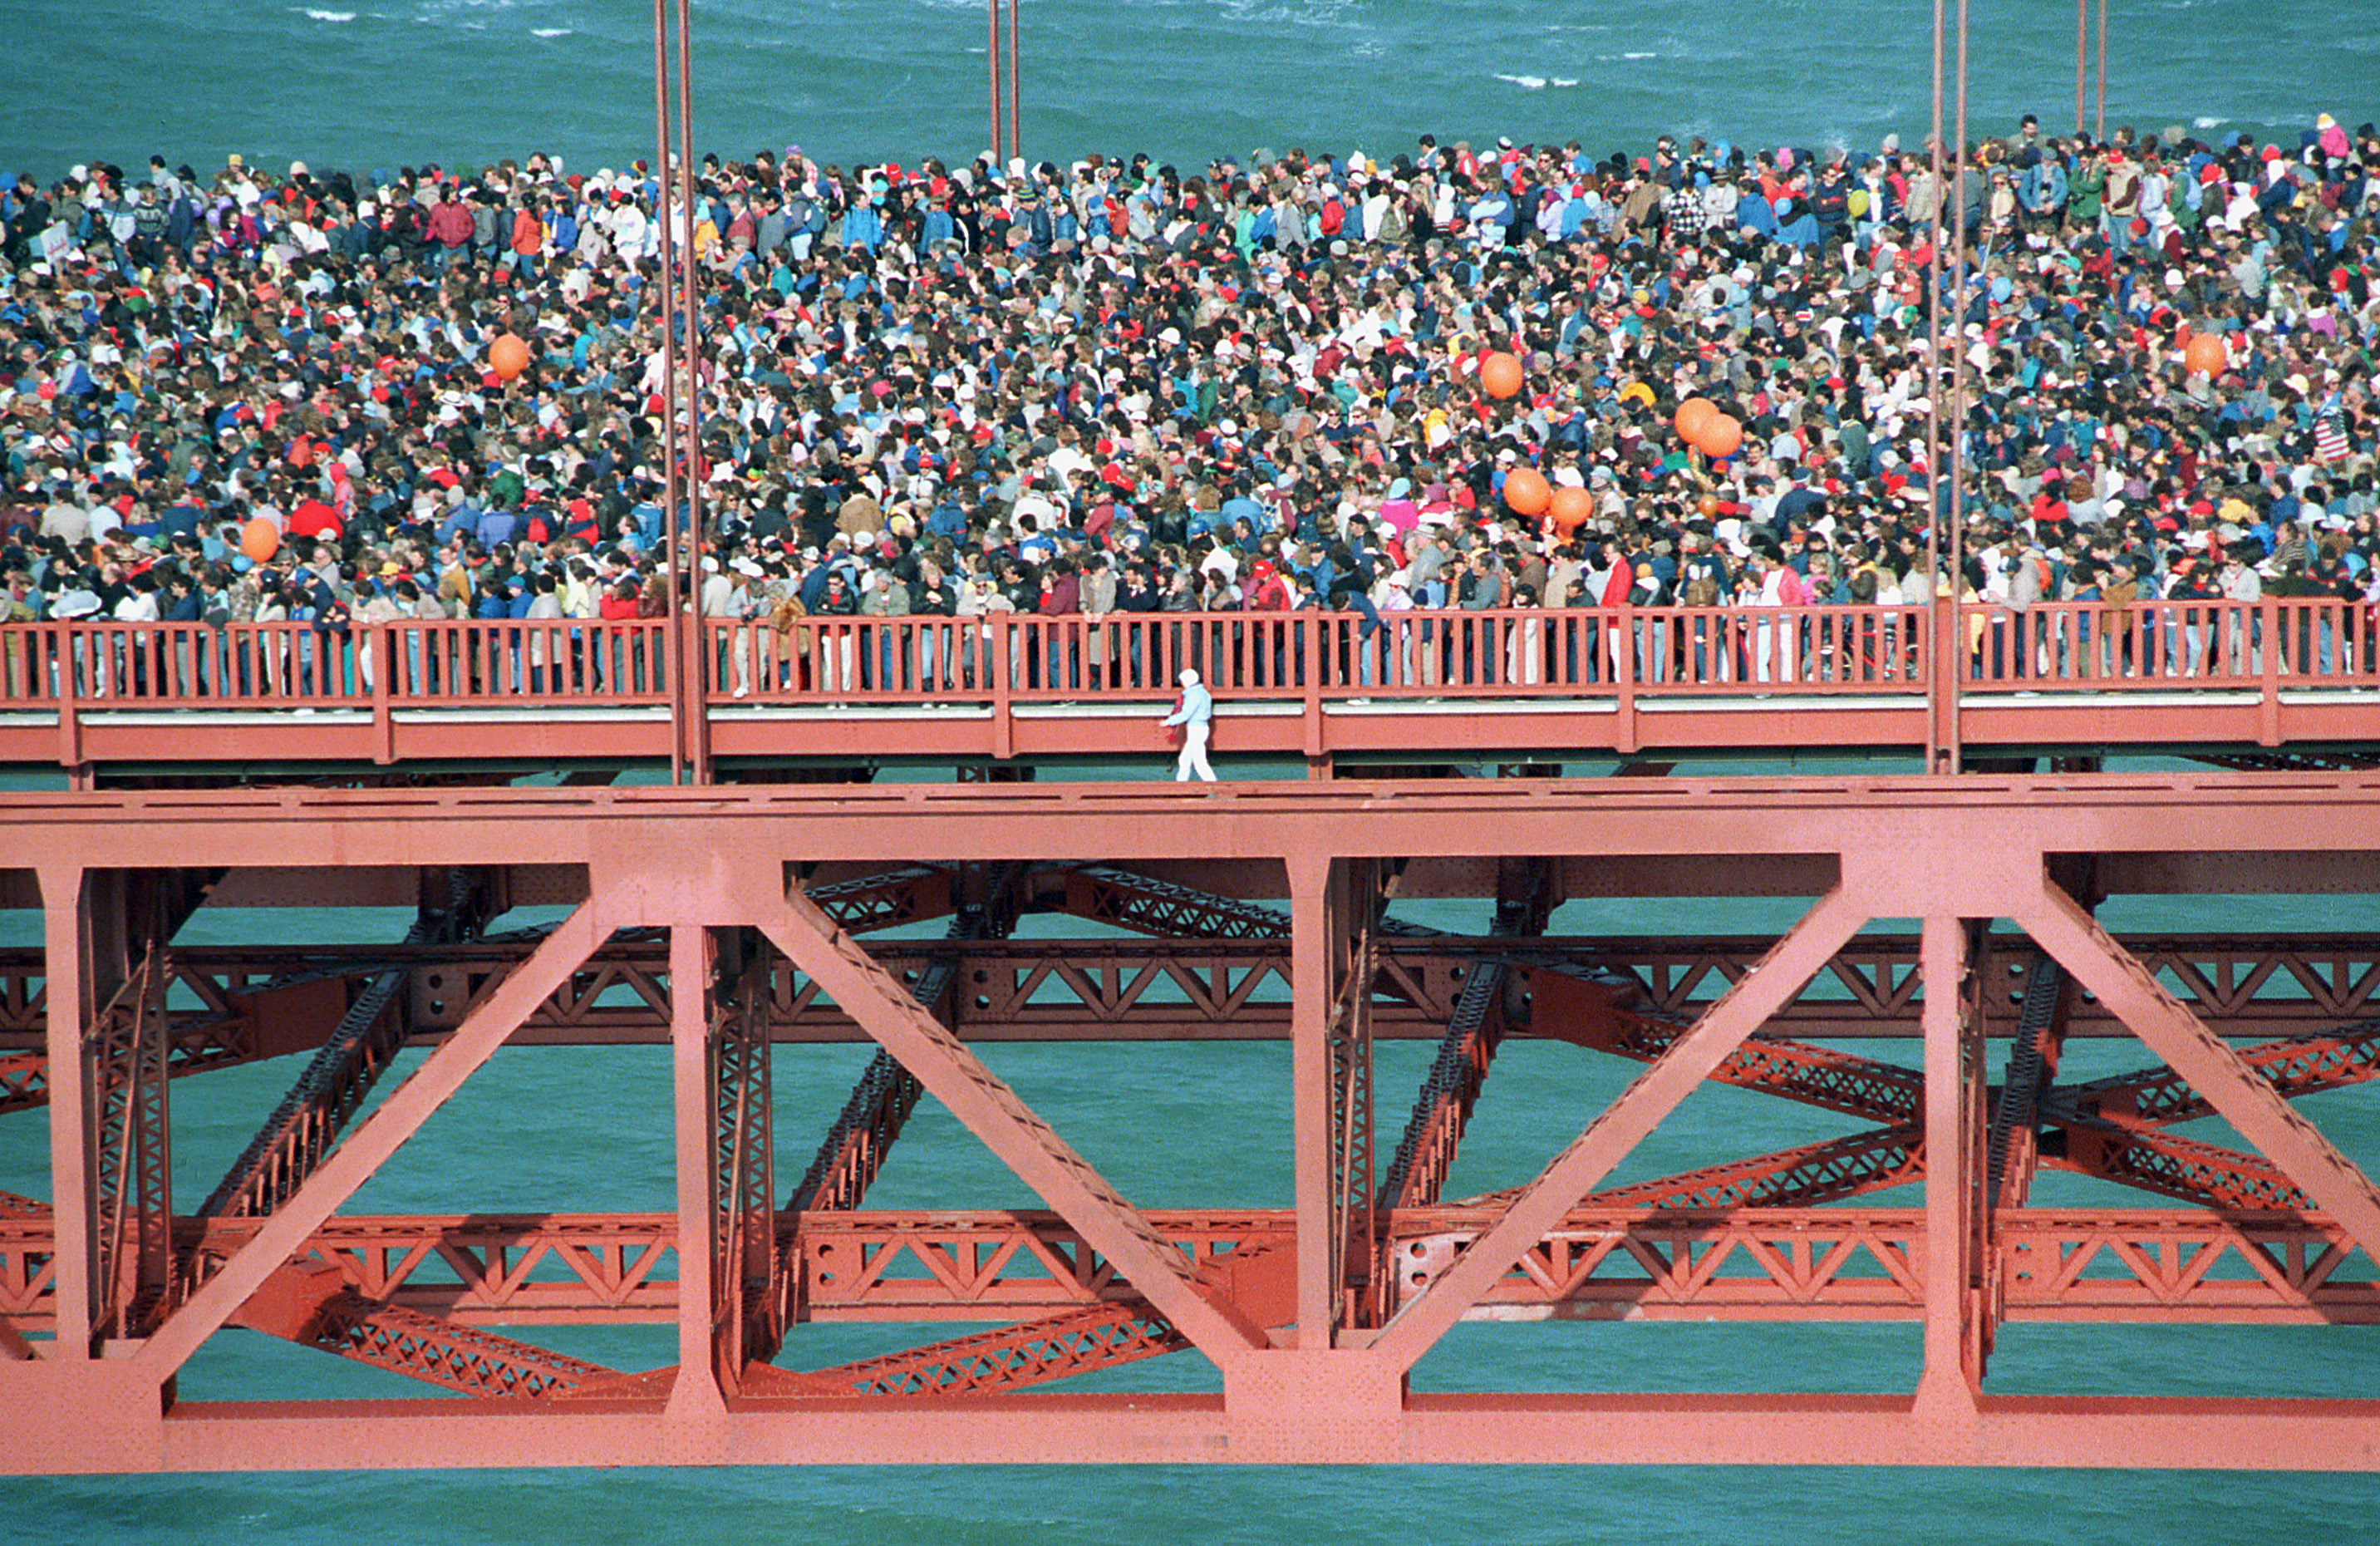 32 years ago today hundreds of thousands of people gathered on the Golden Gate Bridge